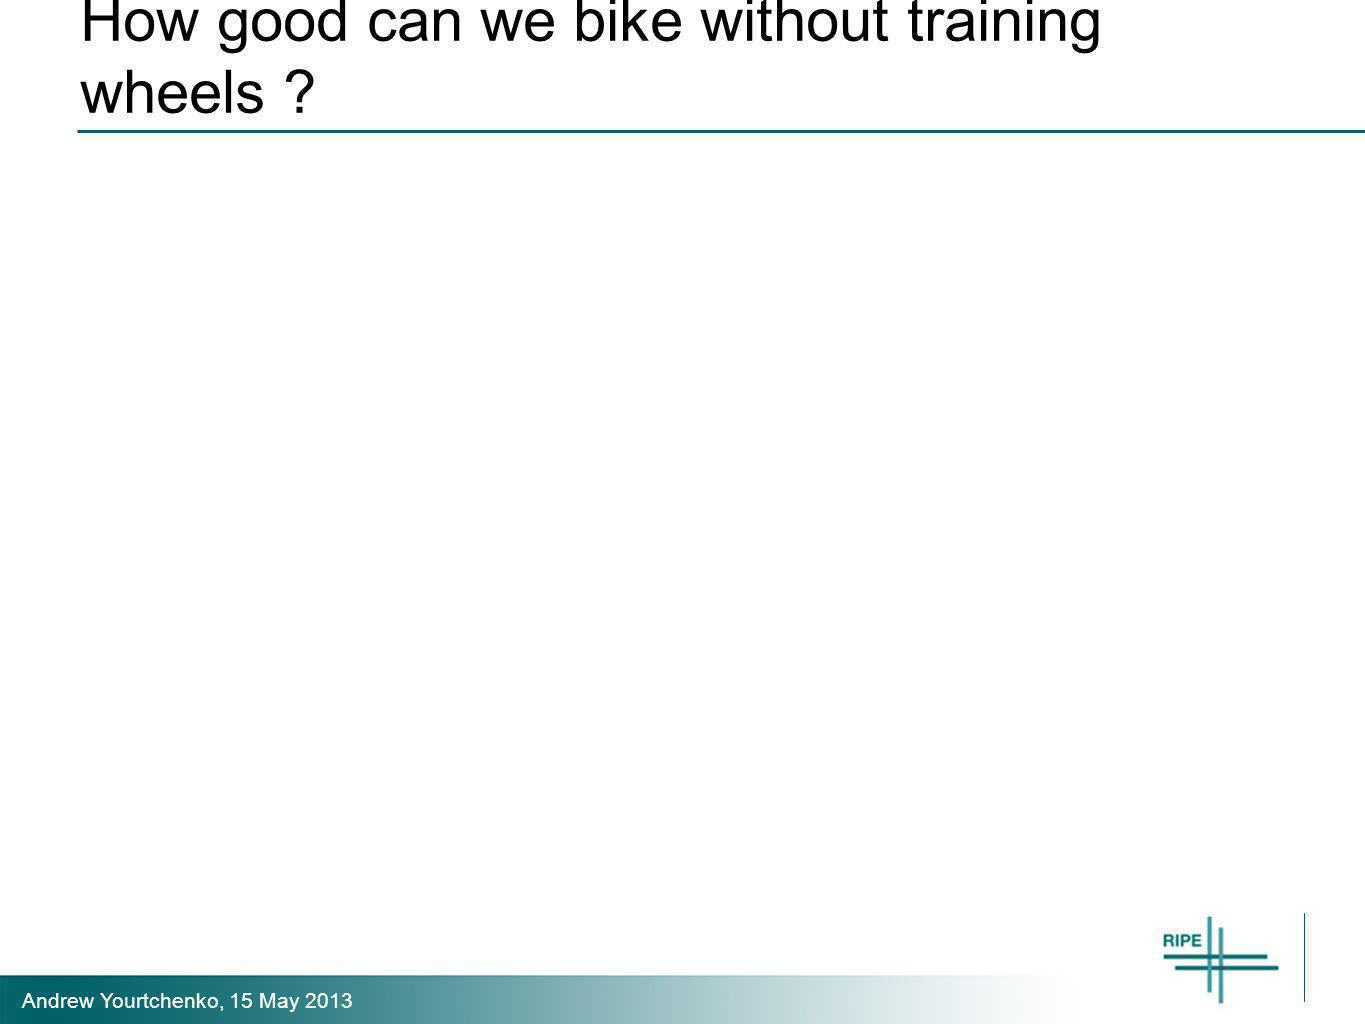 Andrew Yourtchenko, 15 May 2013 How good can we bike without training wheels